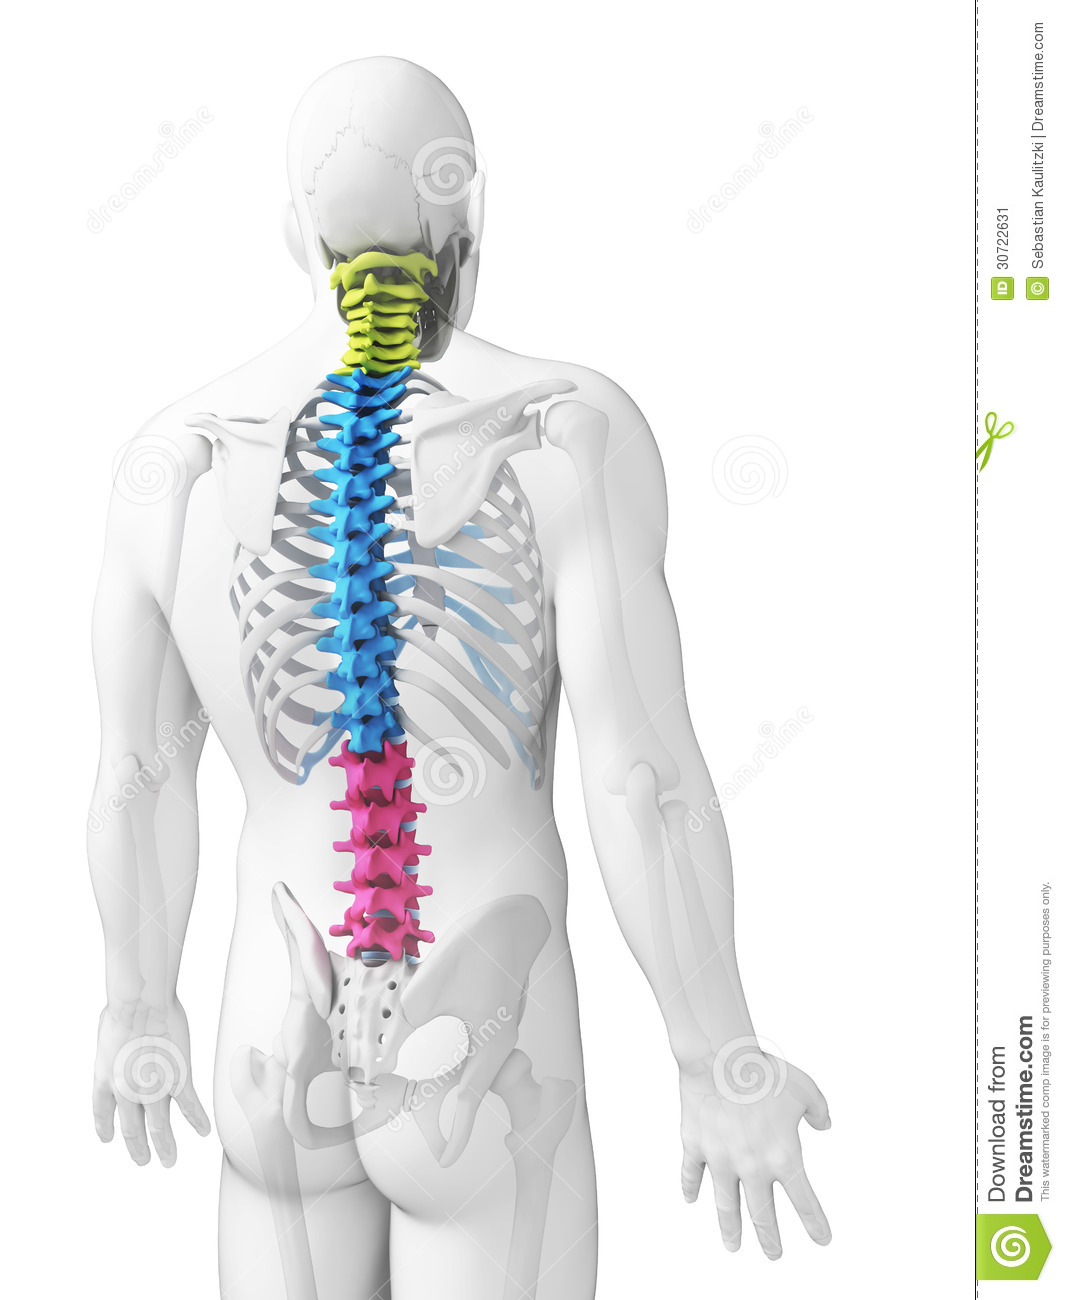 Sections Of The Spine Stock Image - Image: 30722631